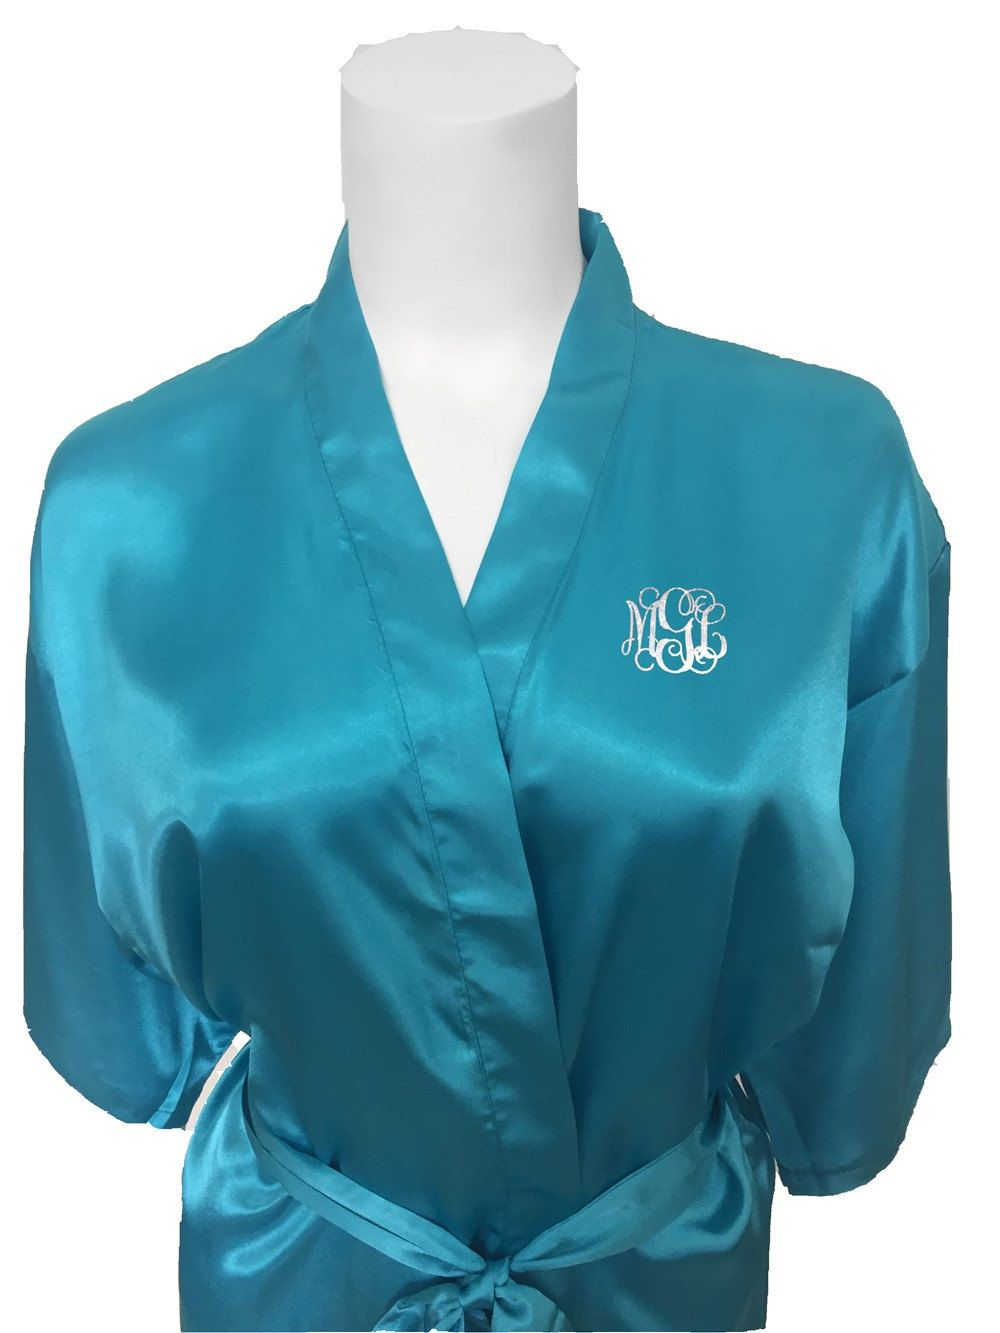 Turquoise Bridal Party Robe...Monogram Mother of the Bride Robe...Bridal  Robe...Getting Ready Robe...Wedding Robes...Bridal Satin Robe... by ... 9d0560f9e